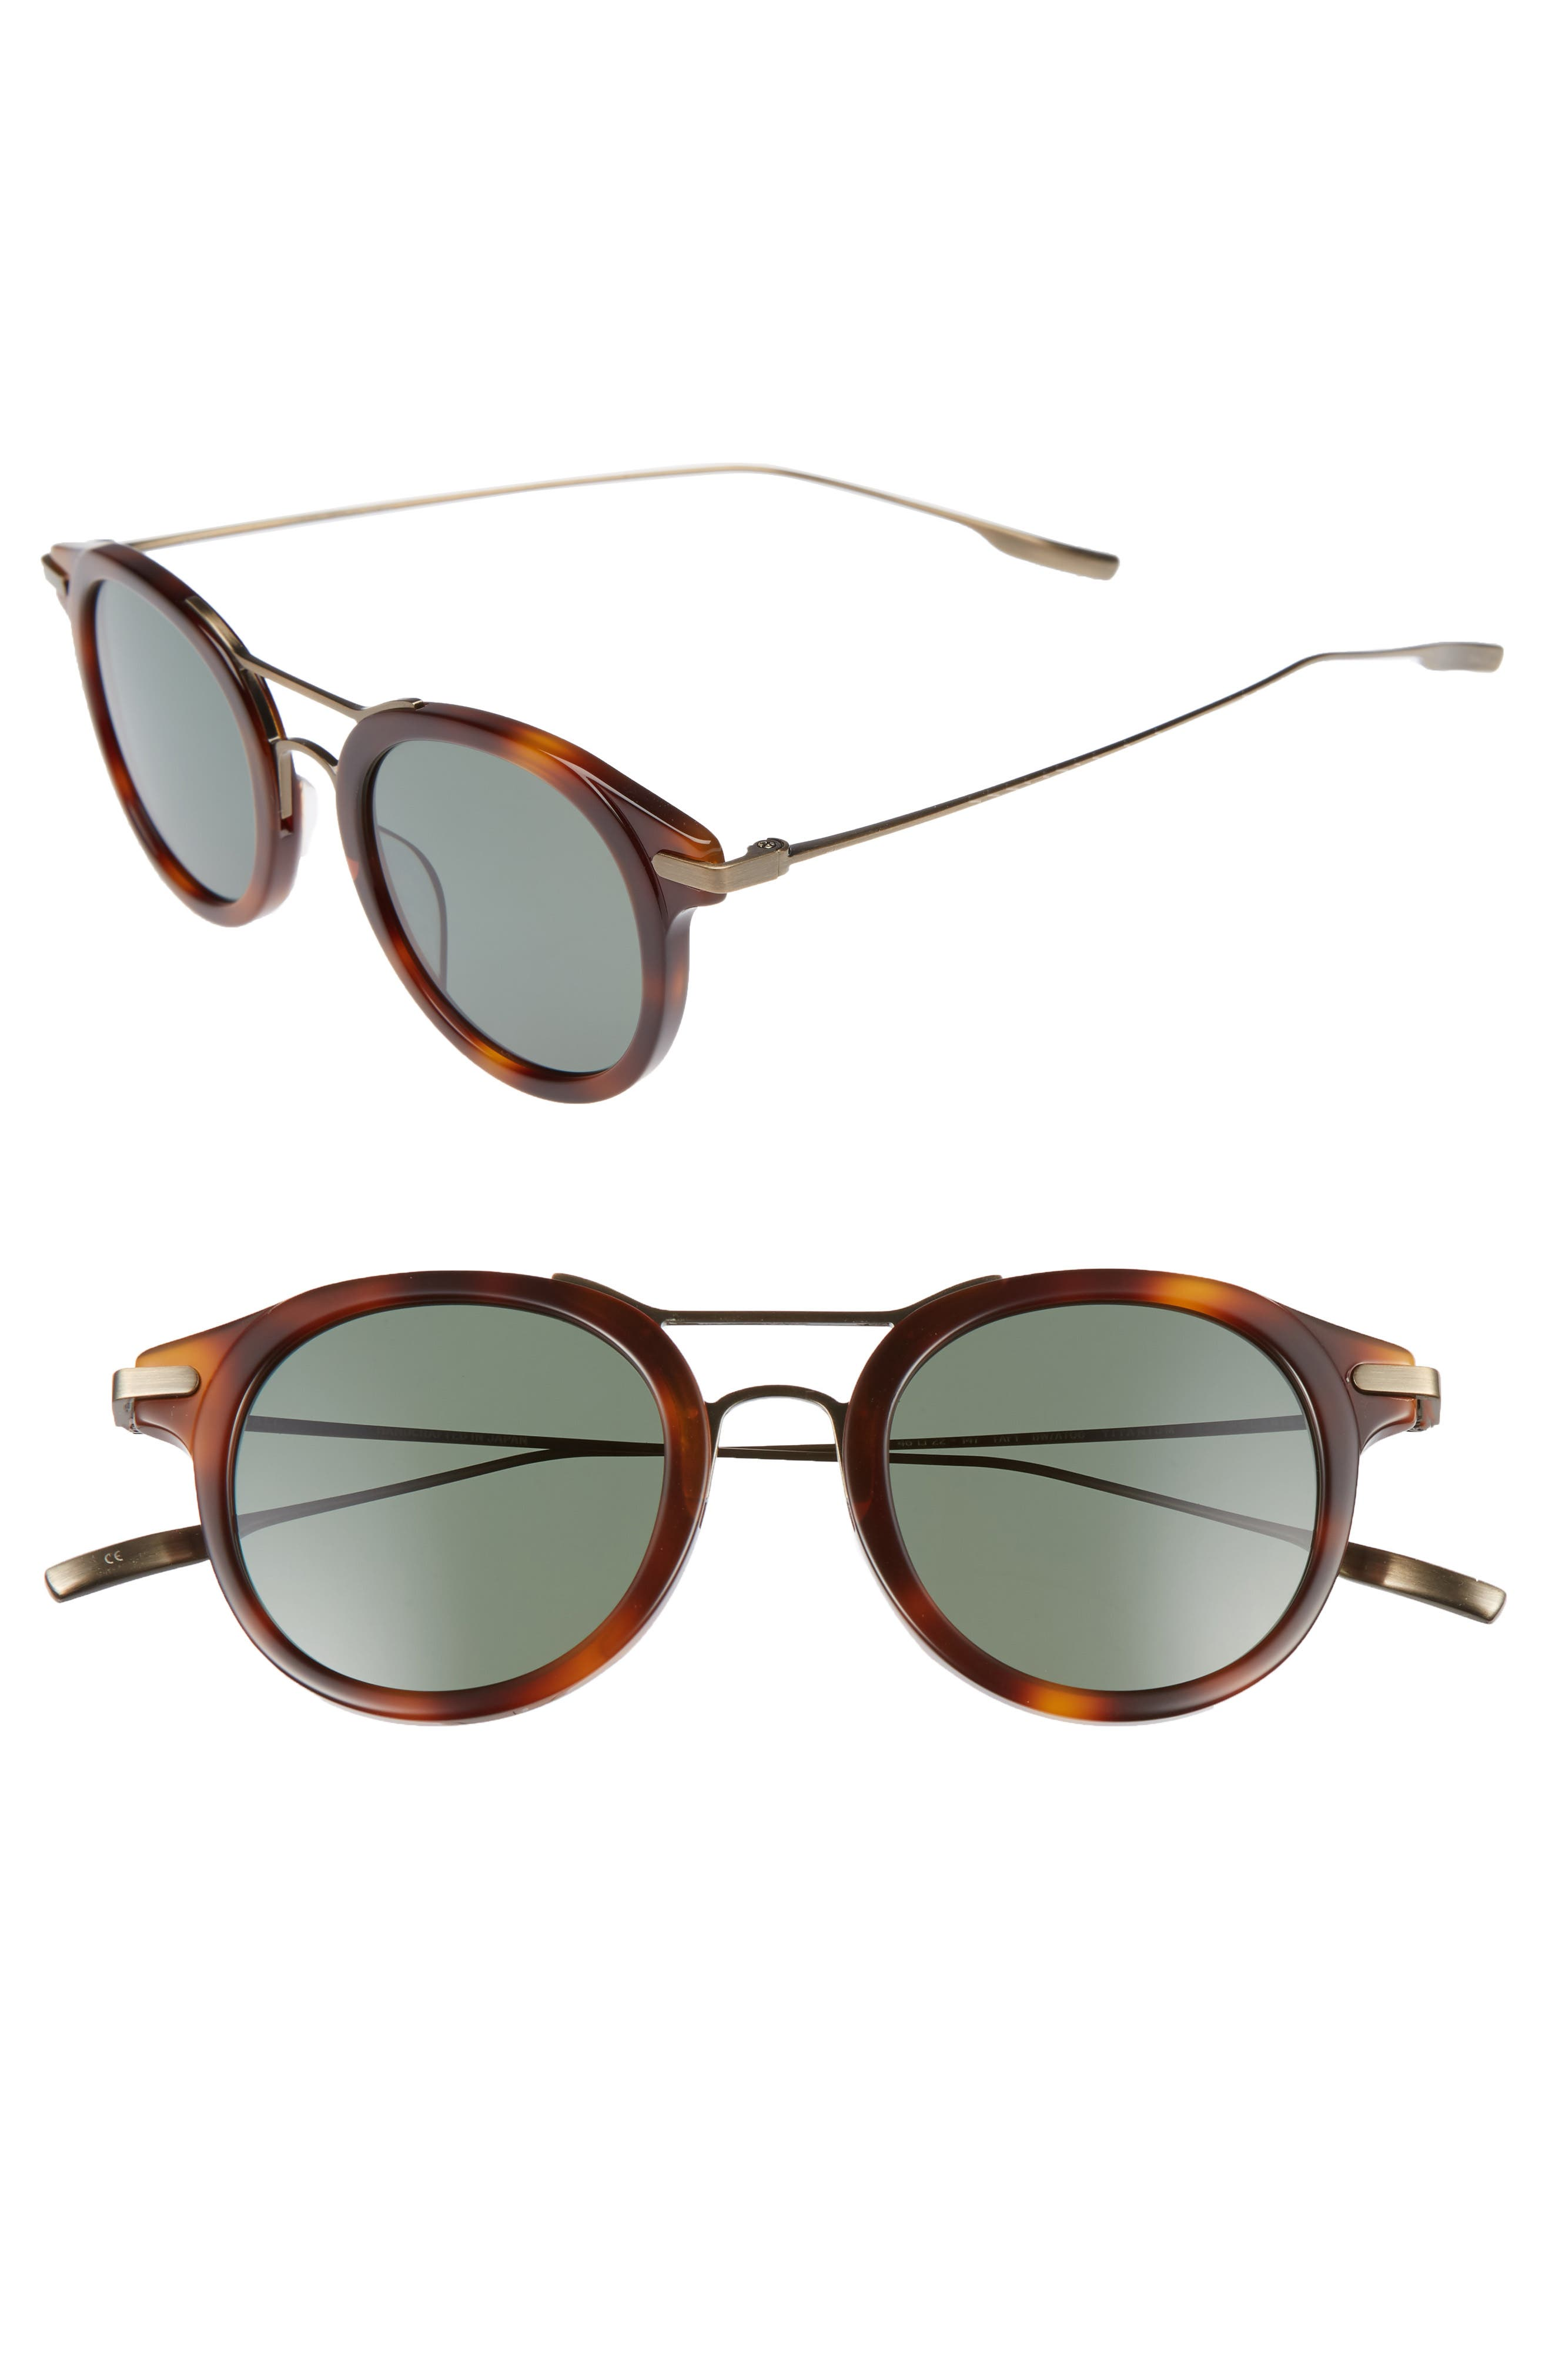 SALT Taft 46mm Polarized Round Sunglasses